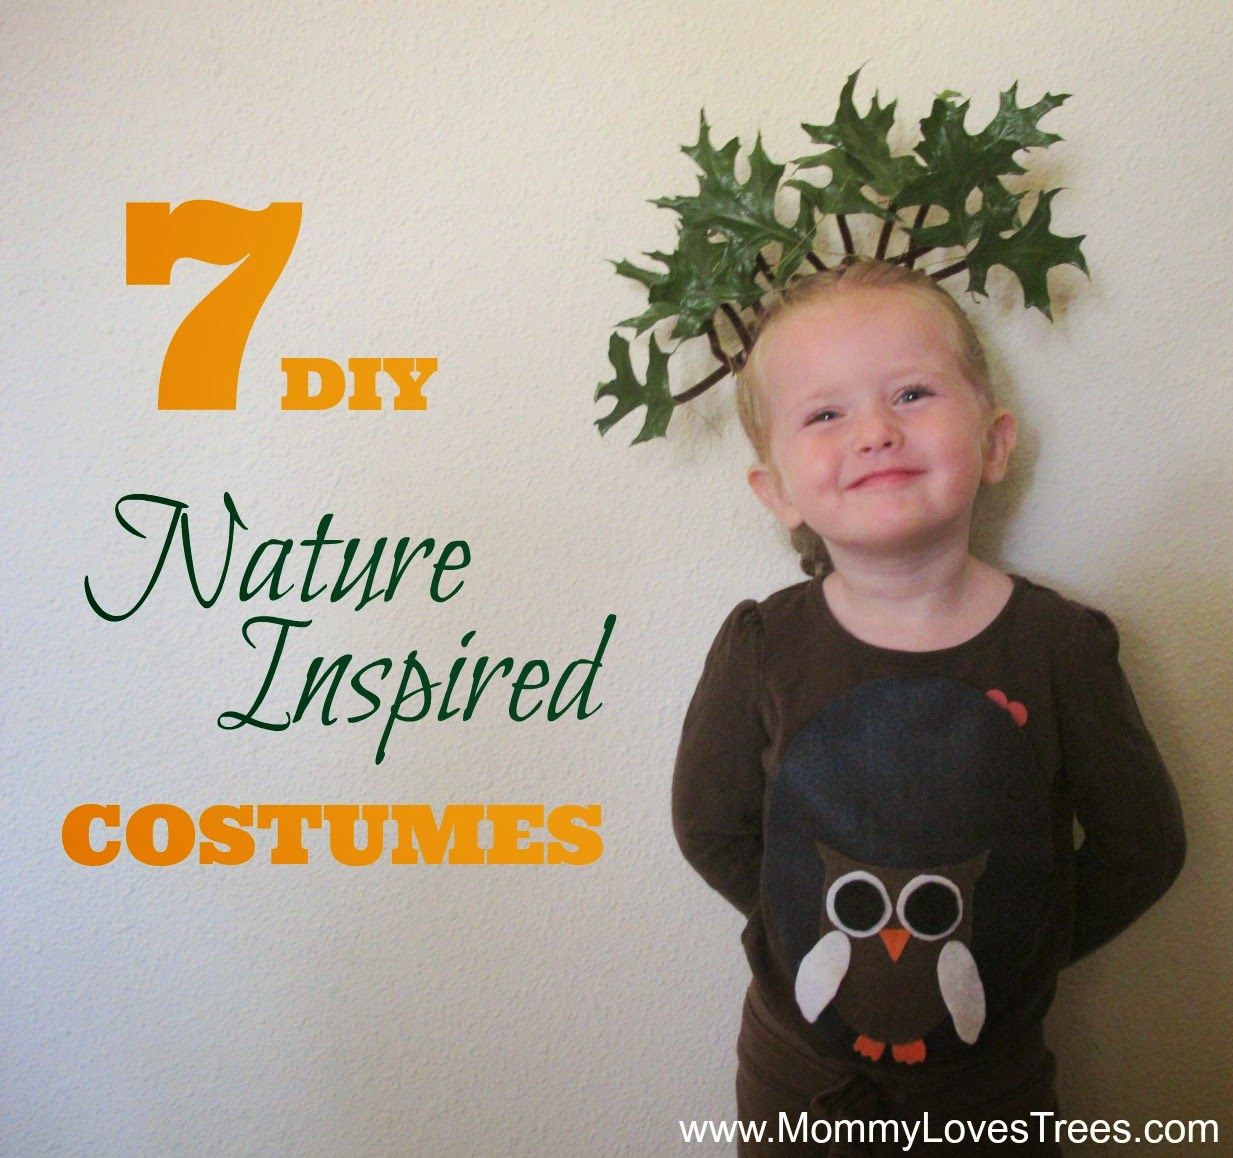 Halloween Costume Ideas. No time to go to the Halloween store? Not to worry. We've got plenty of last minute Halloween costume ideas to make your family scream with delight! From kids' costume ideas to DIY Halloween costumes for adults, there's something here for everyone.